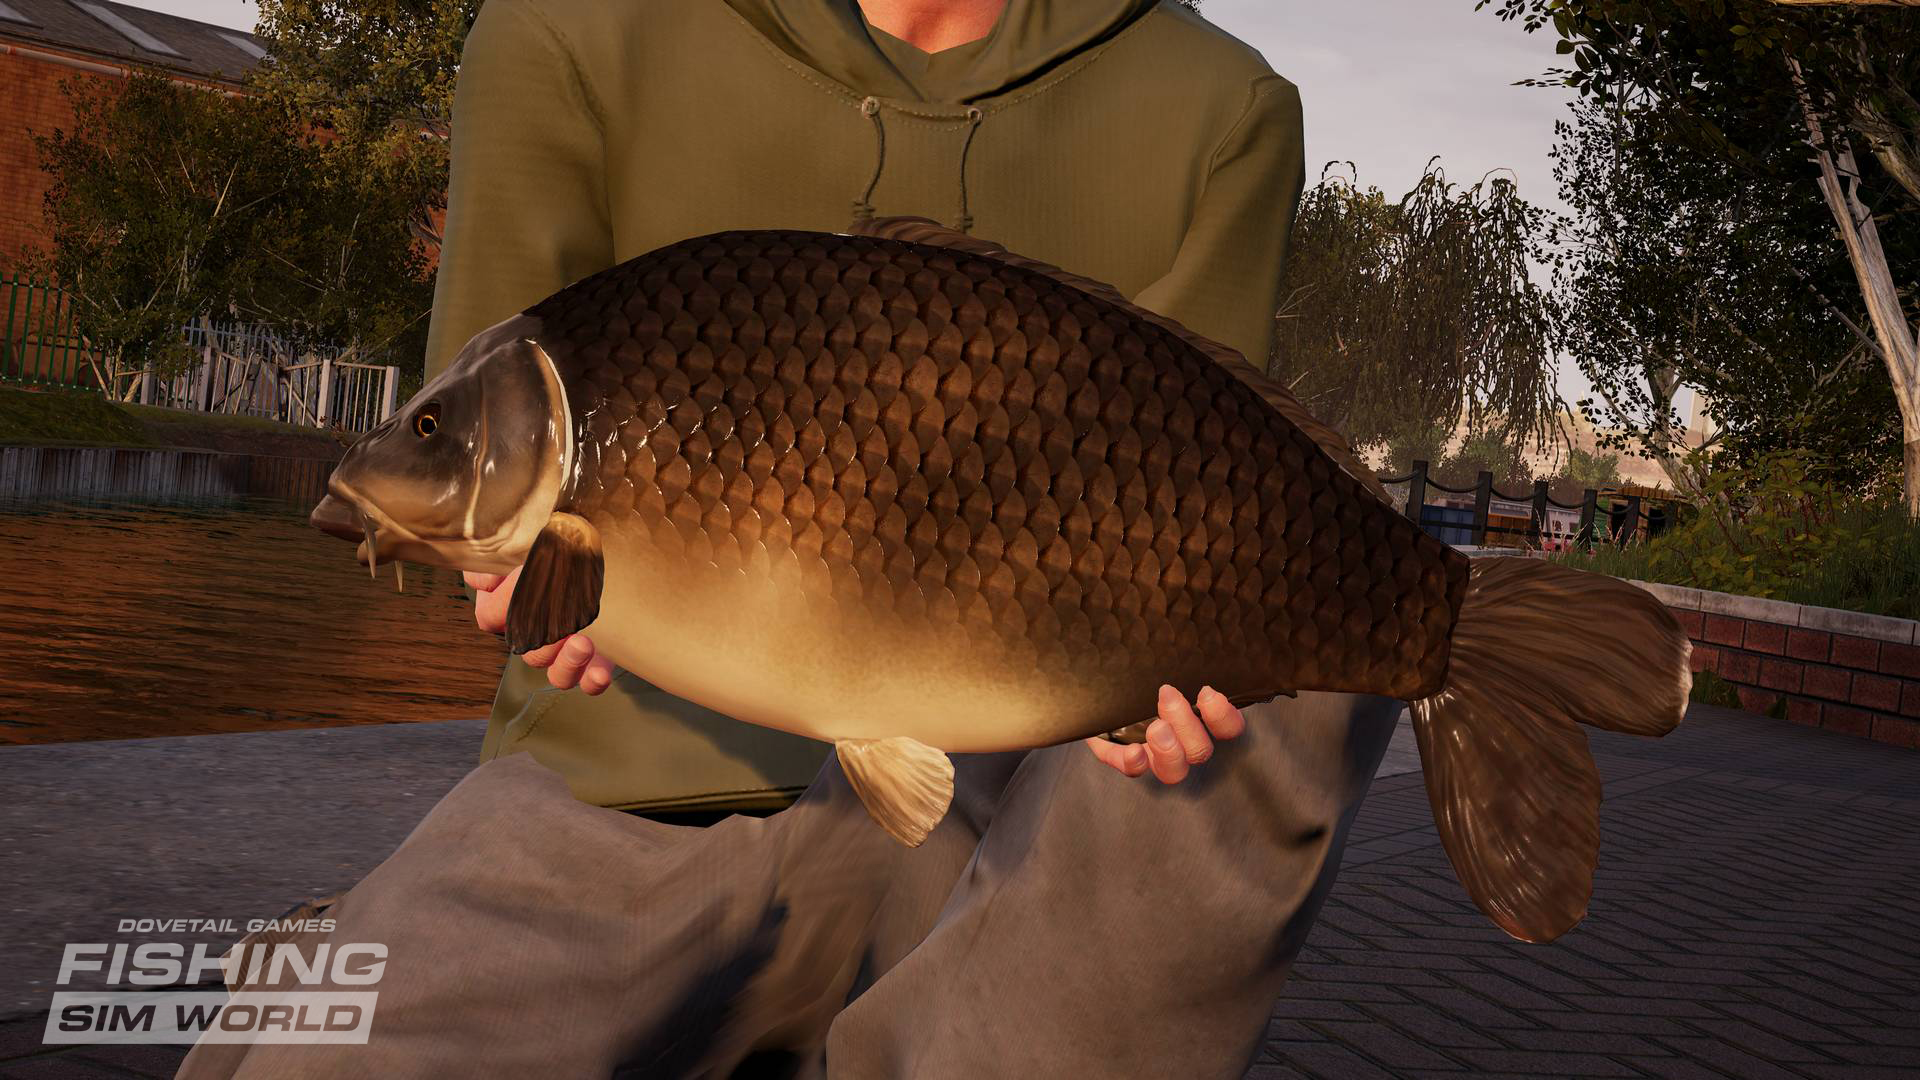 Fishing Sim Worldfrom Dovetail Games is probably the best fishing simulation ever.